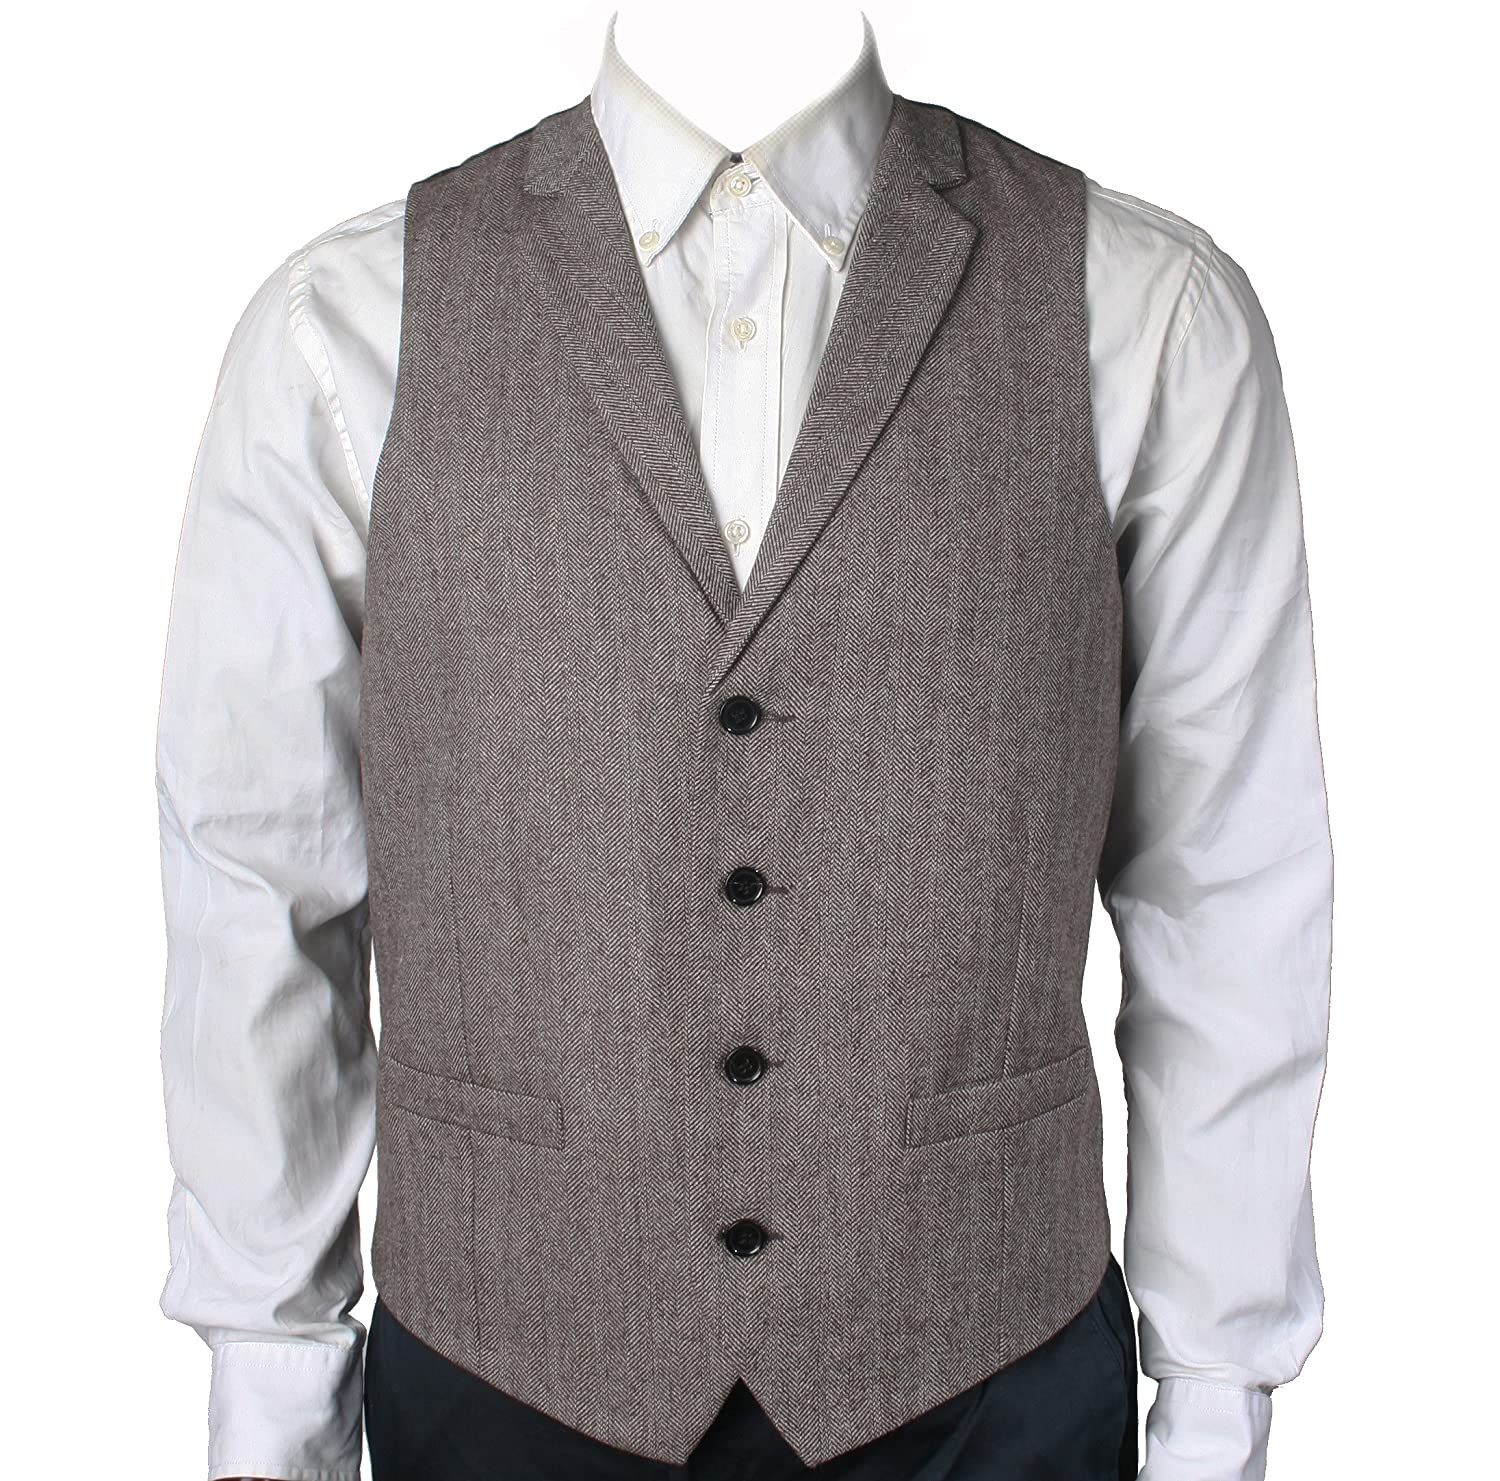 Victorian Men's Clothing Herringbone/Tweed Tailored Collar Suit Vest $37.00 AT vintagedancer.com